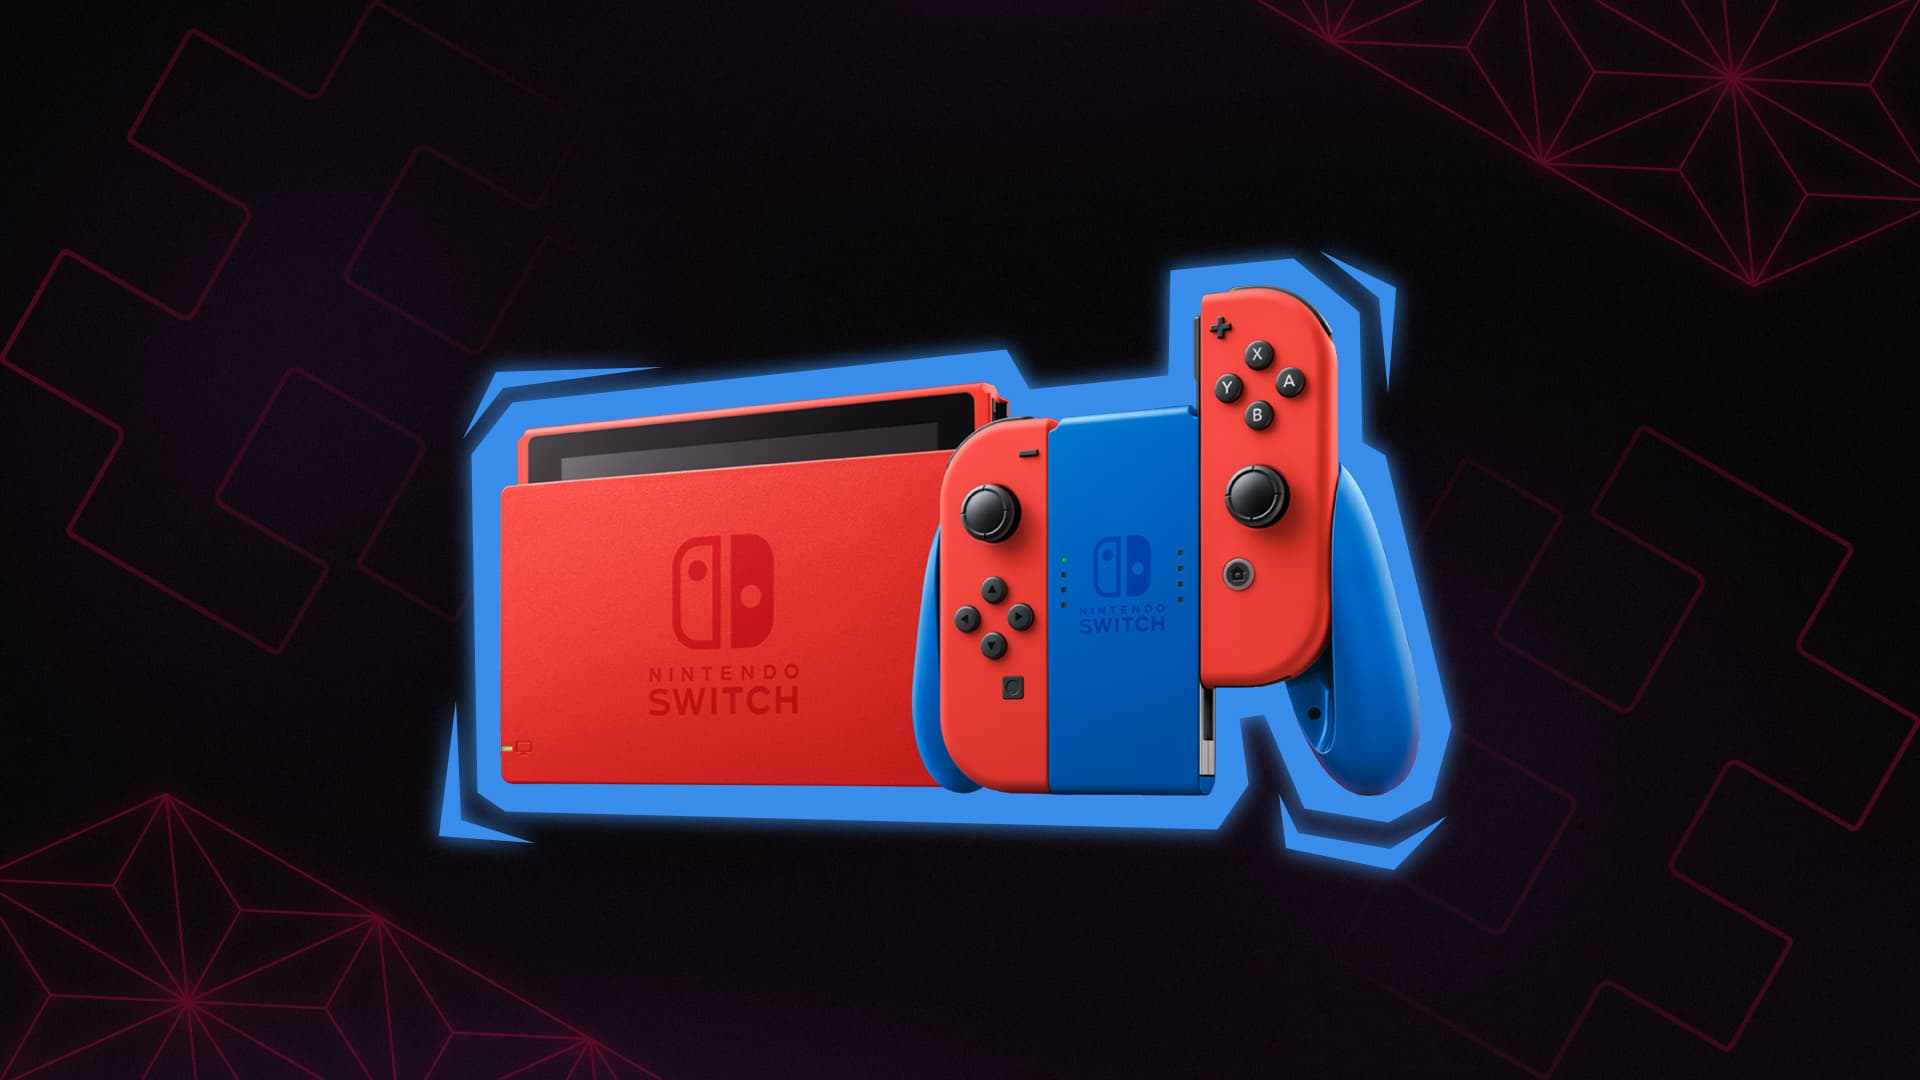 Nintendo-Switch-2019-Review